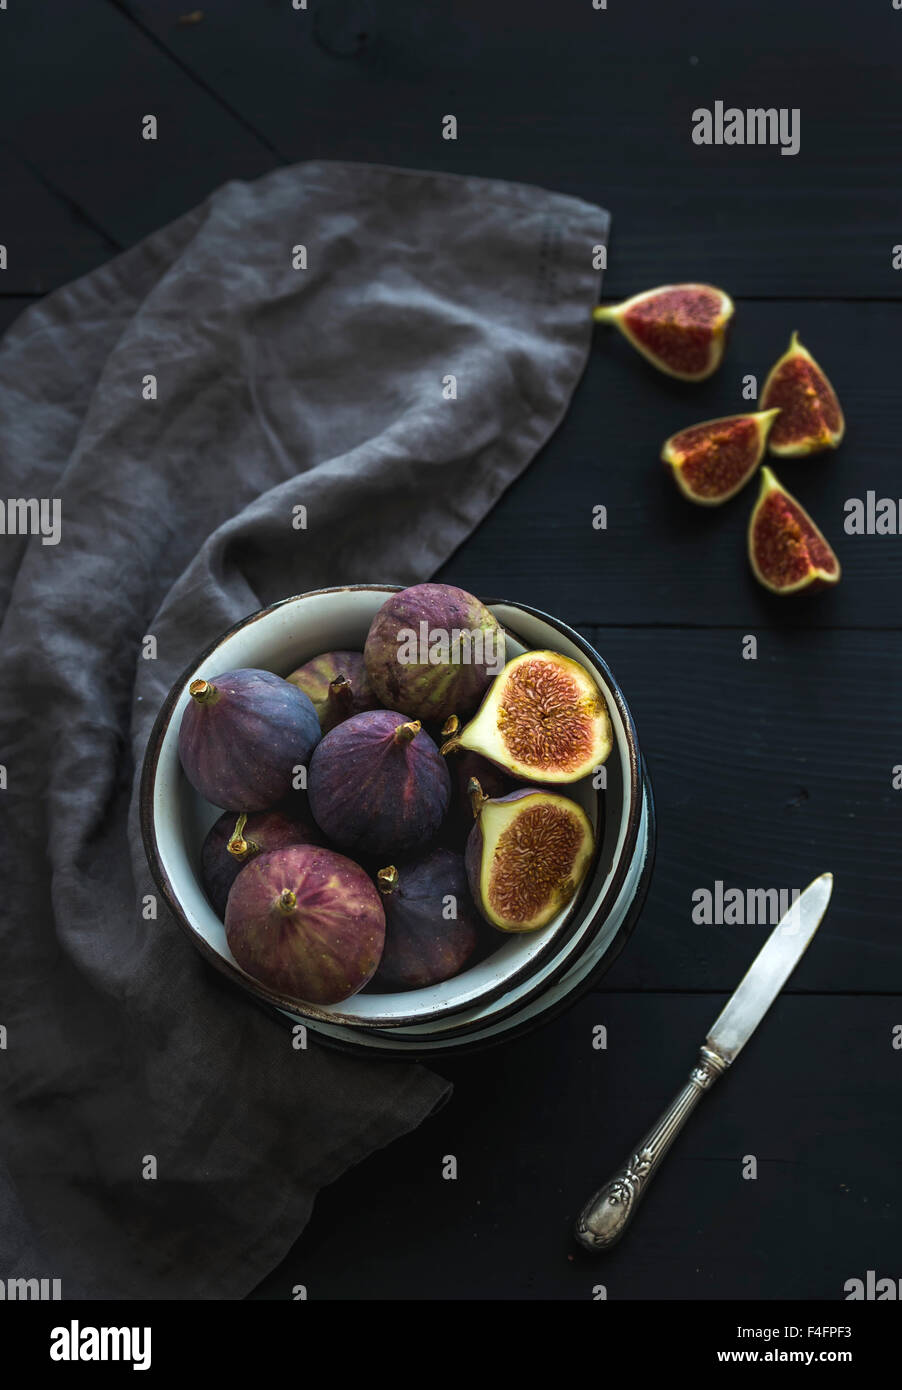 Rustic metal bowl of fresh figs on dark background, top view, selective focus Stock Photo